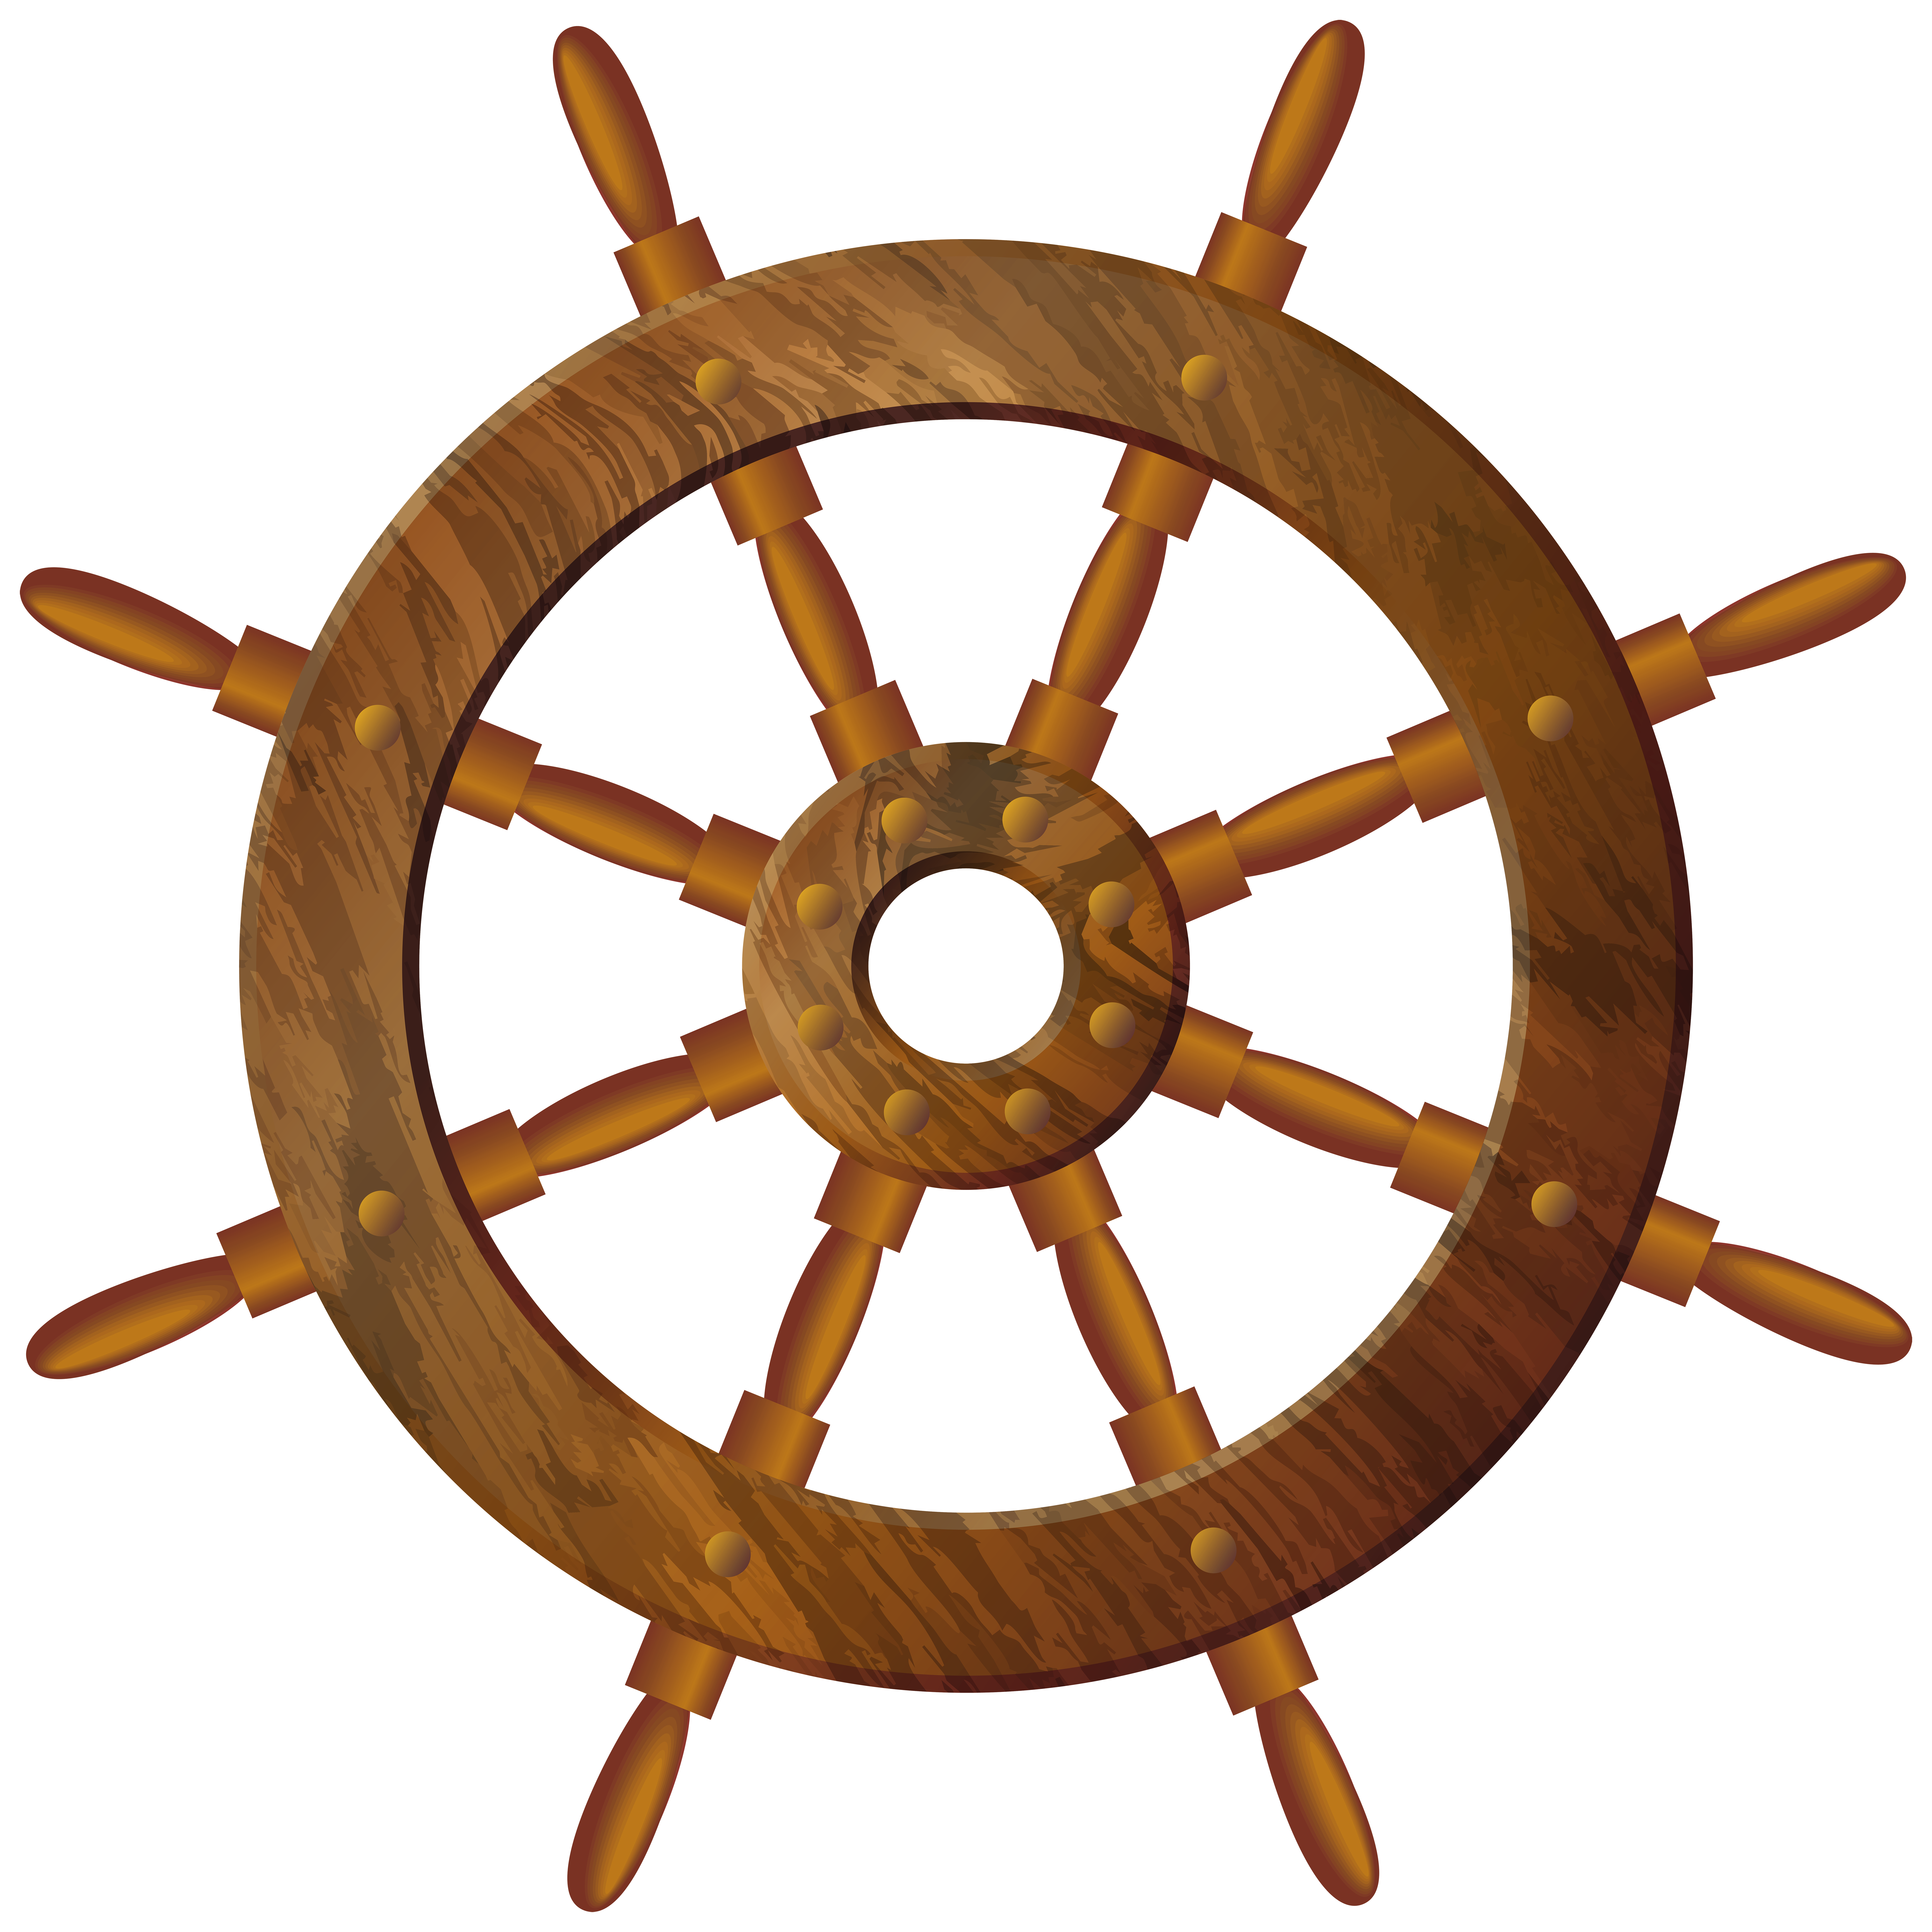 Wheel transparent clip art. Wooden png image gallery